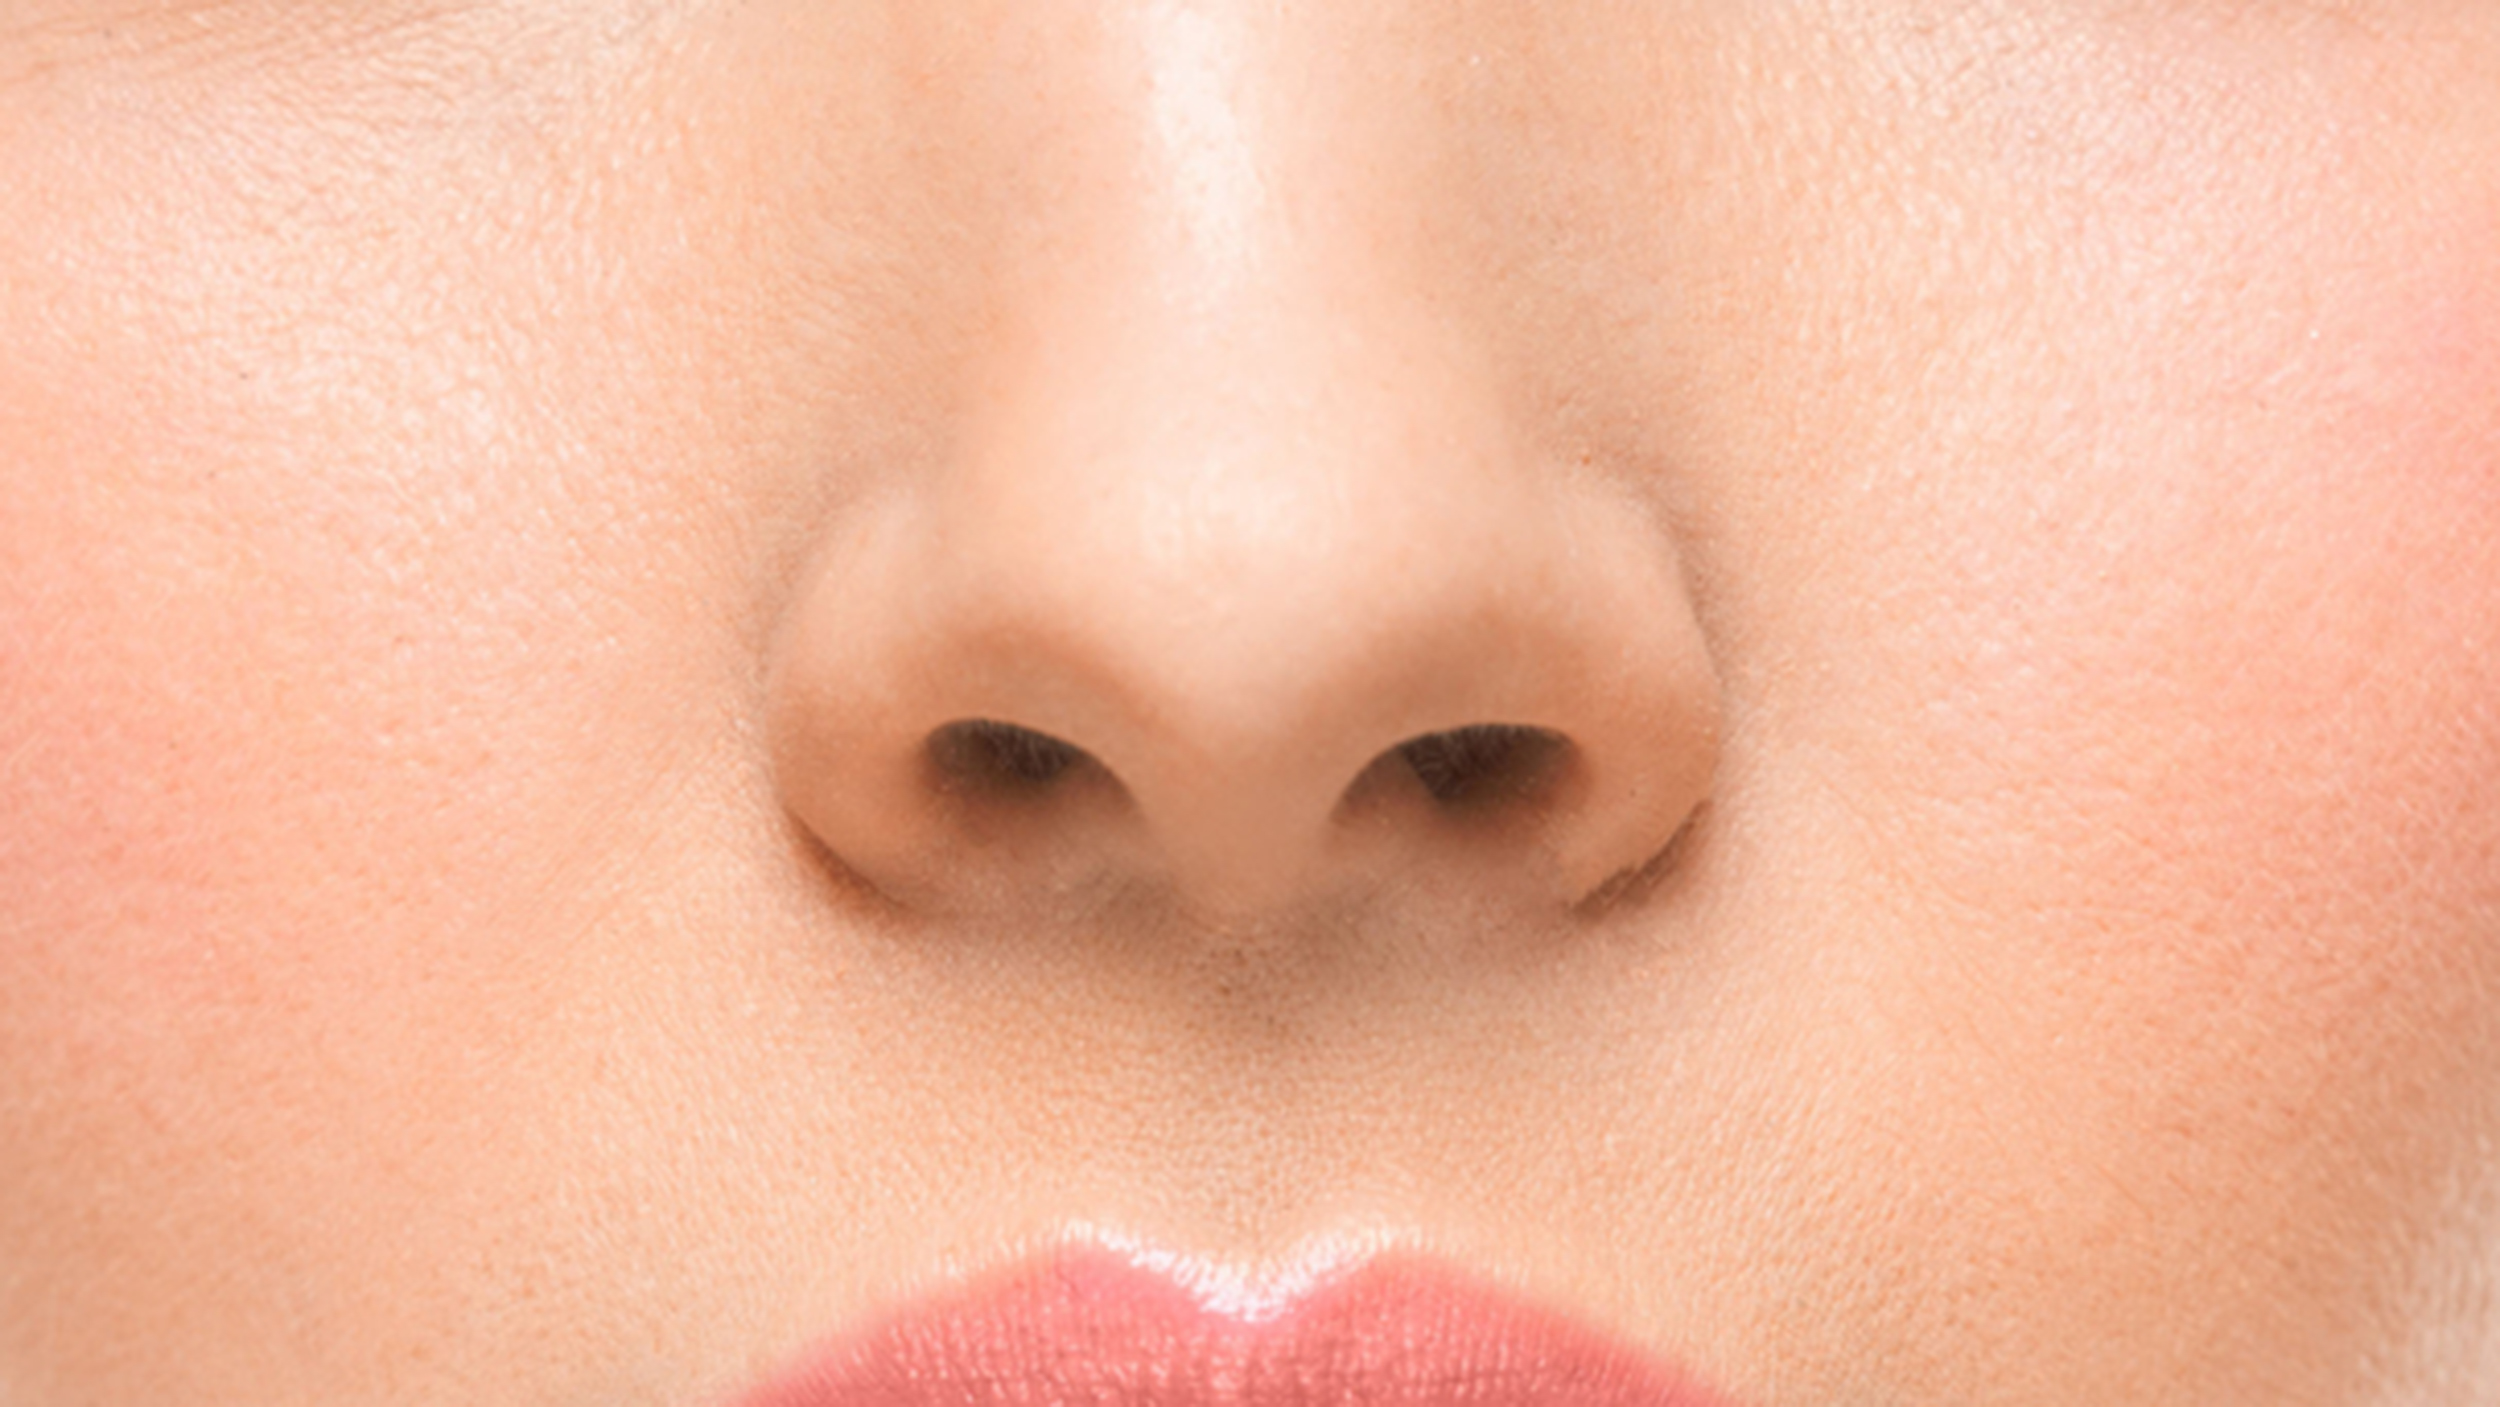 Nose stock photos and images (124,369)